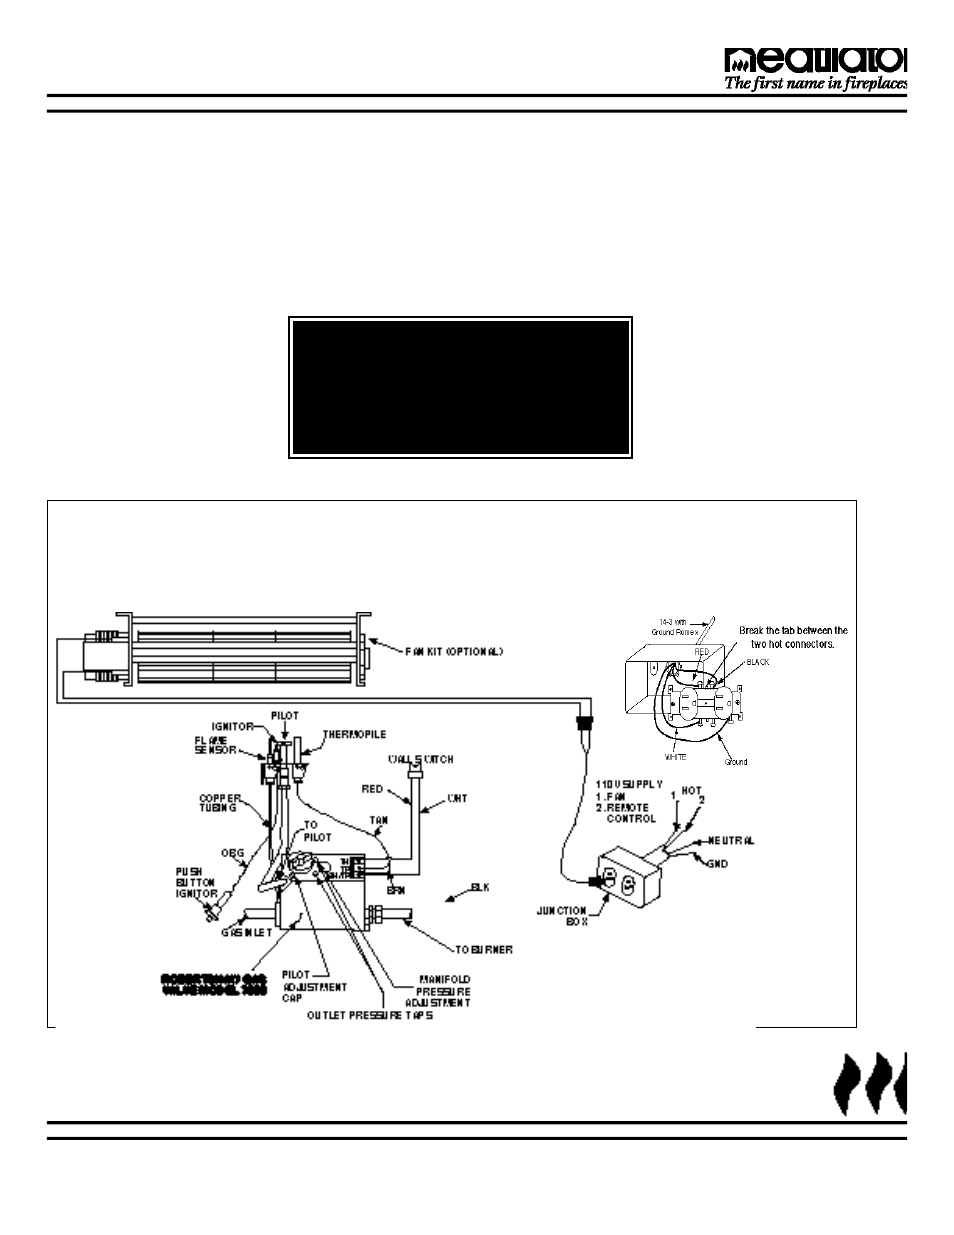 medium resolution of wiring diagram for fireplace fan